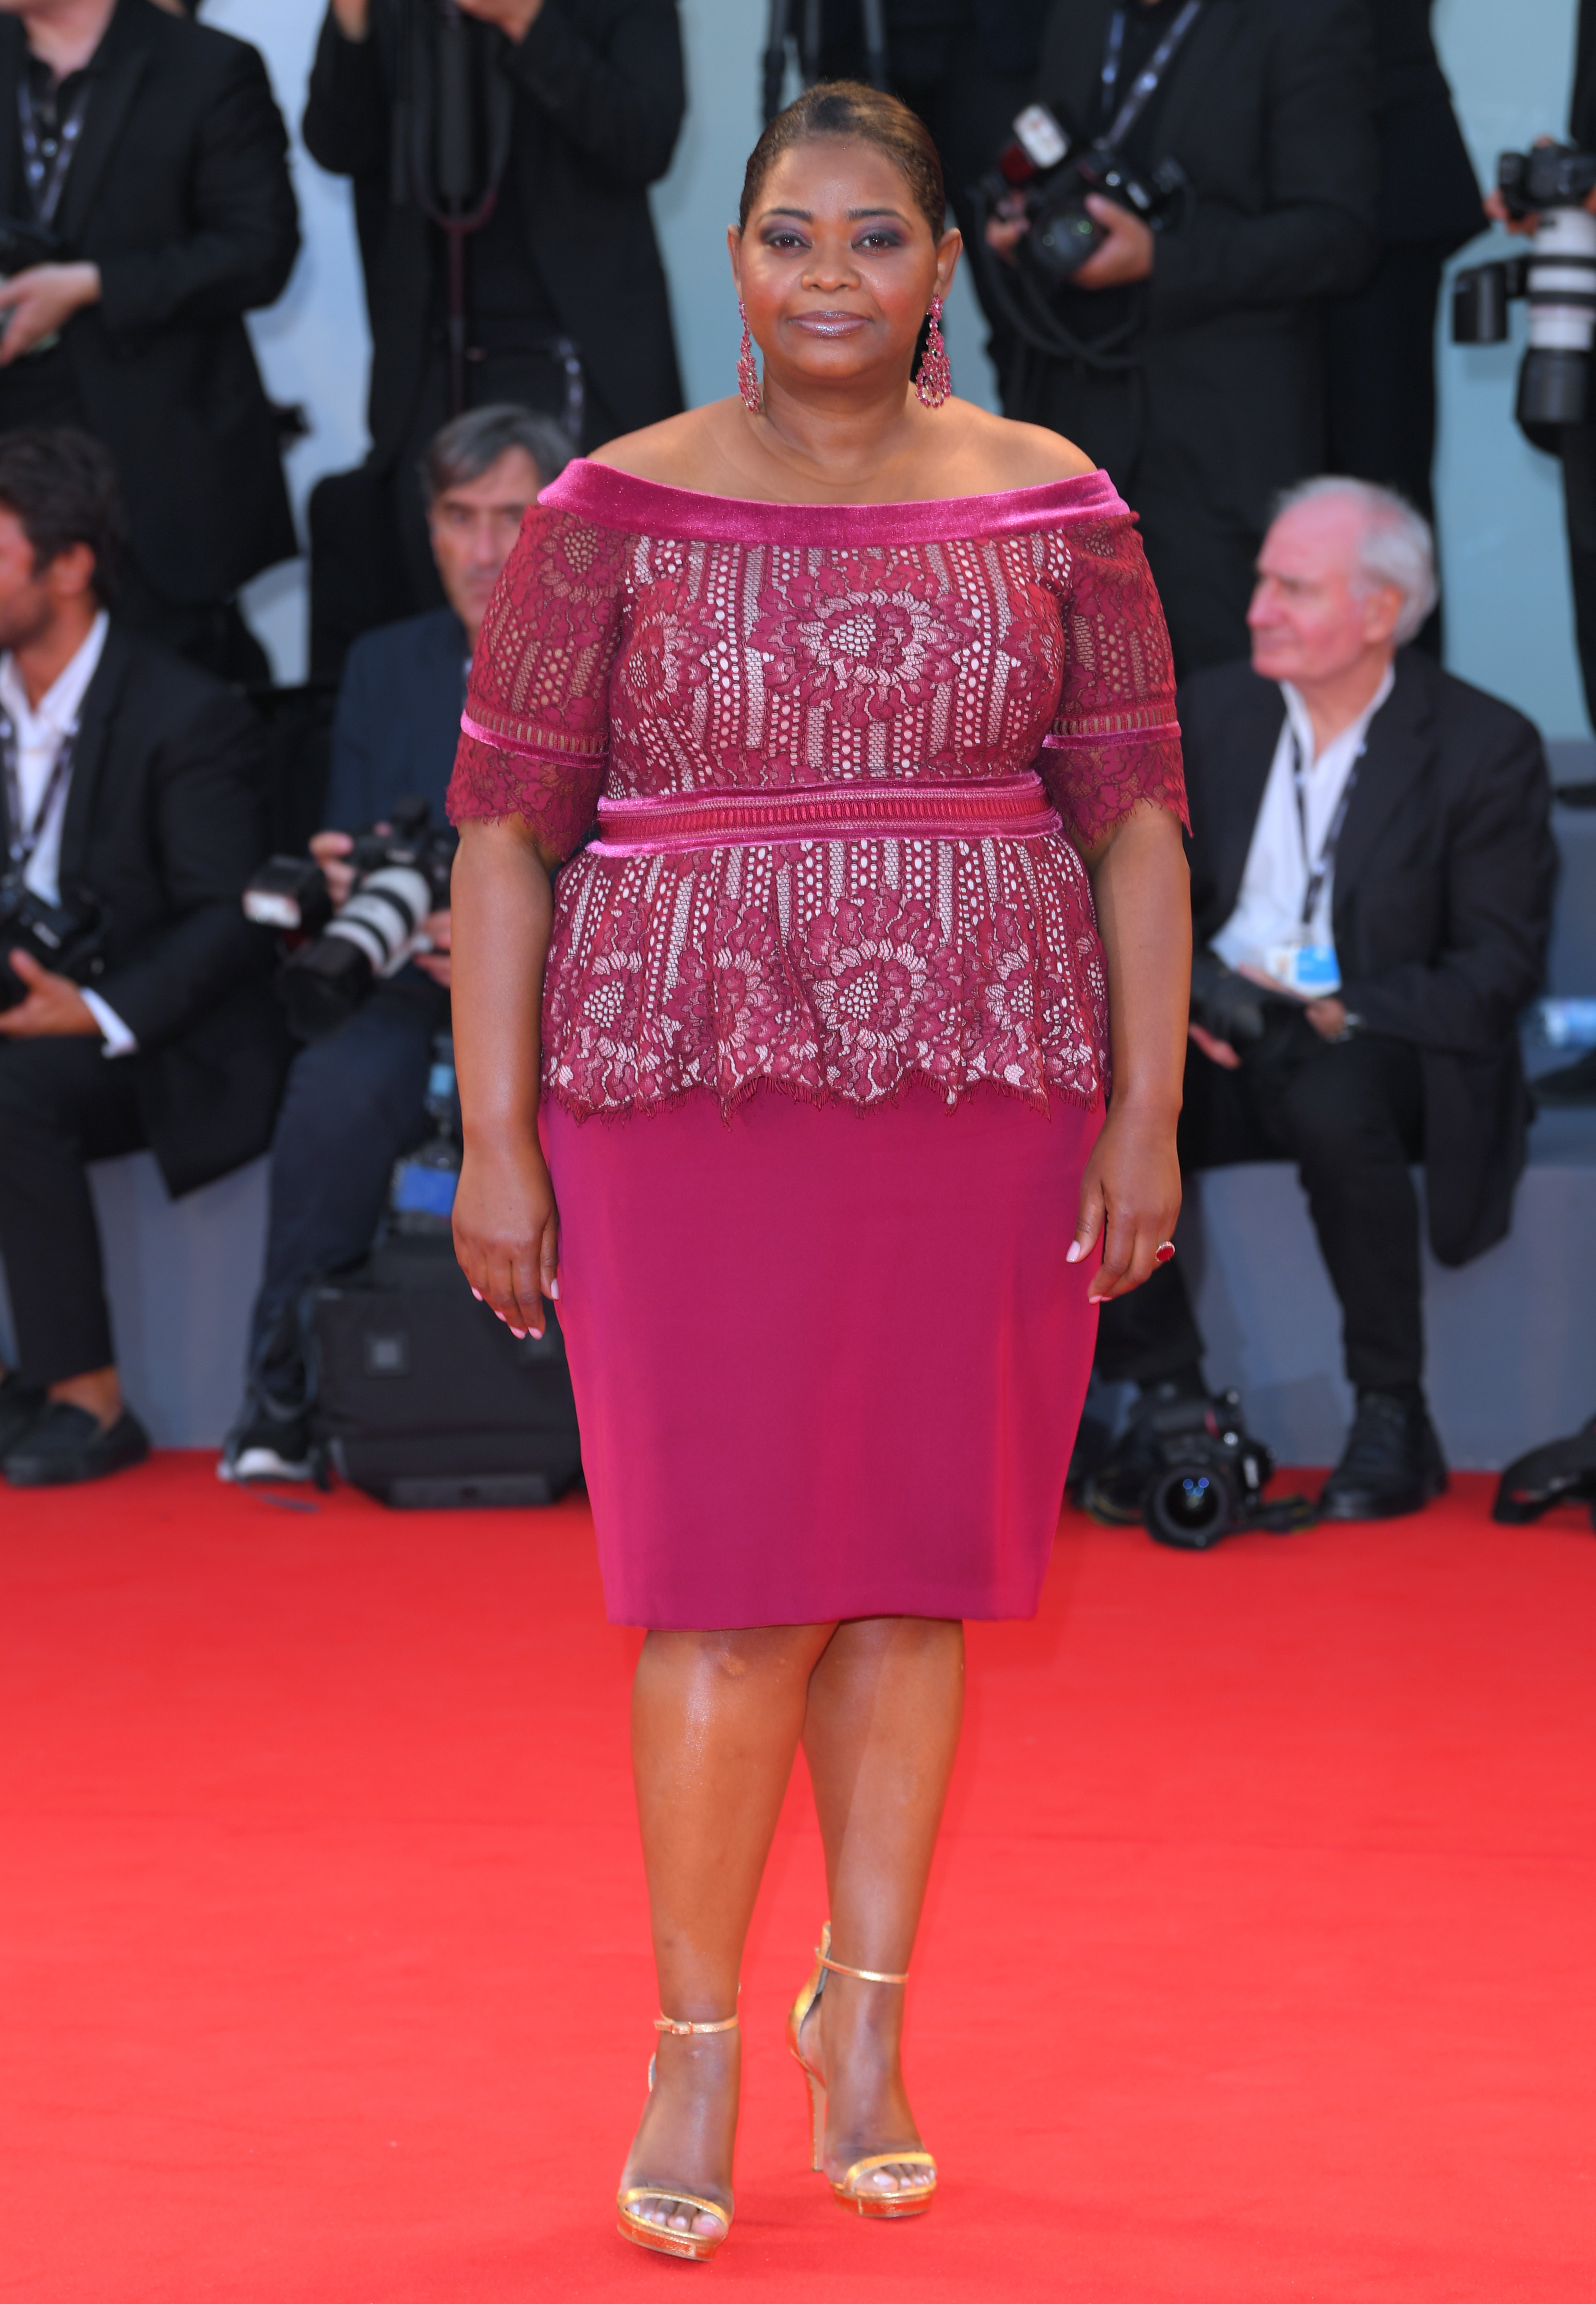 """Octavia Spencer attends """"The Shape Of Water"""" premiere at the 74th Venice International Film Festival on Aug. 31, 2017."""